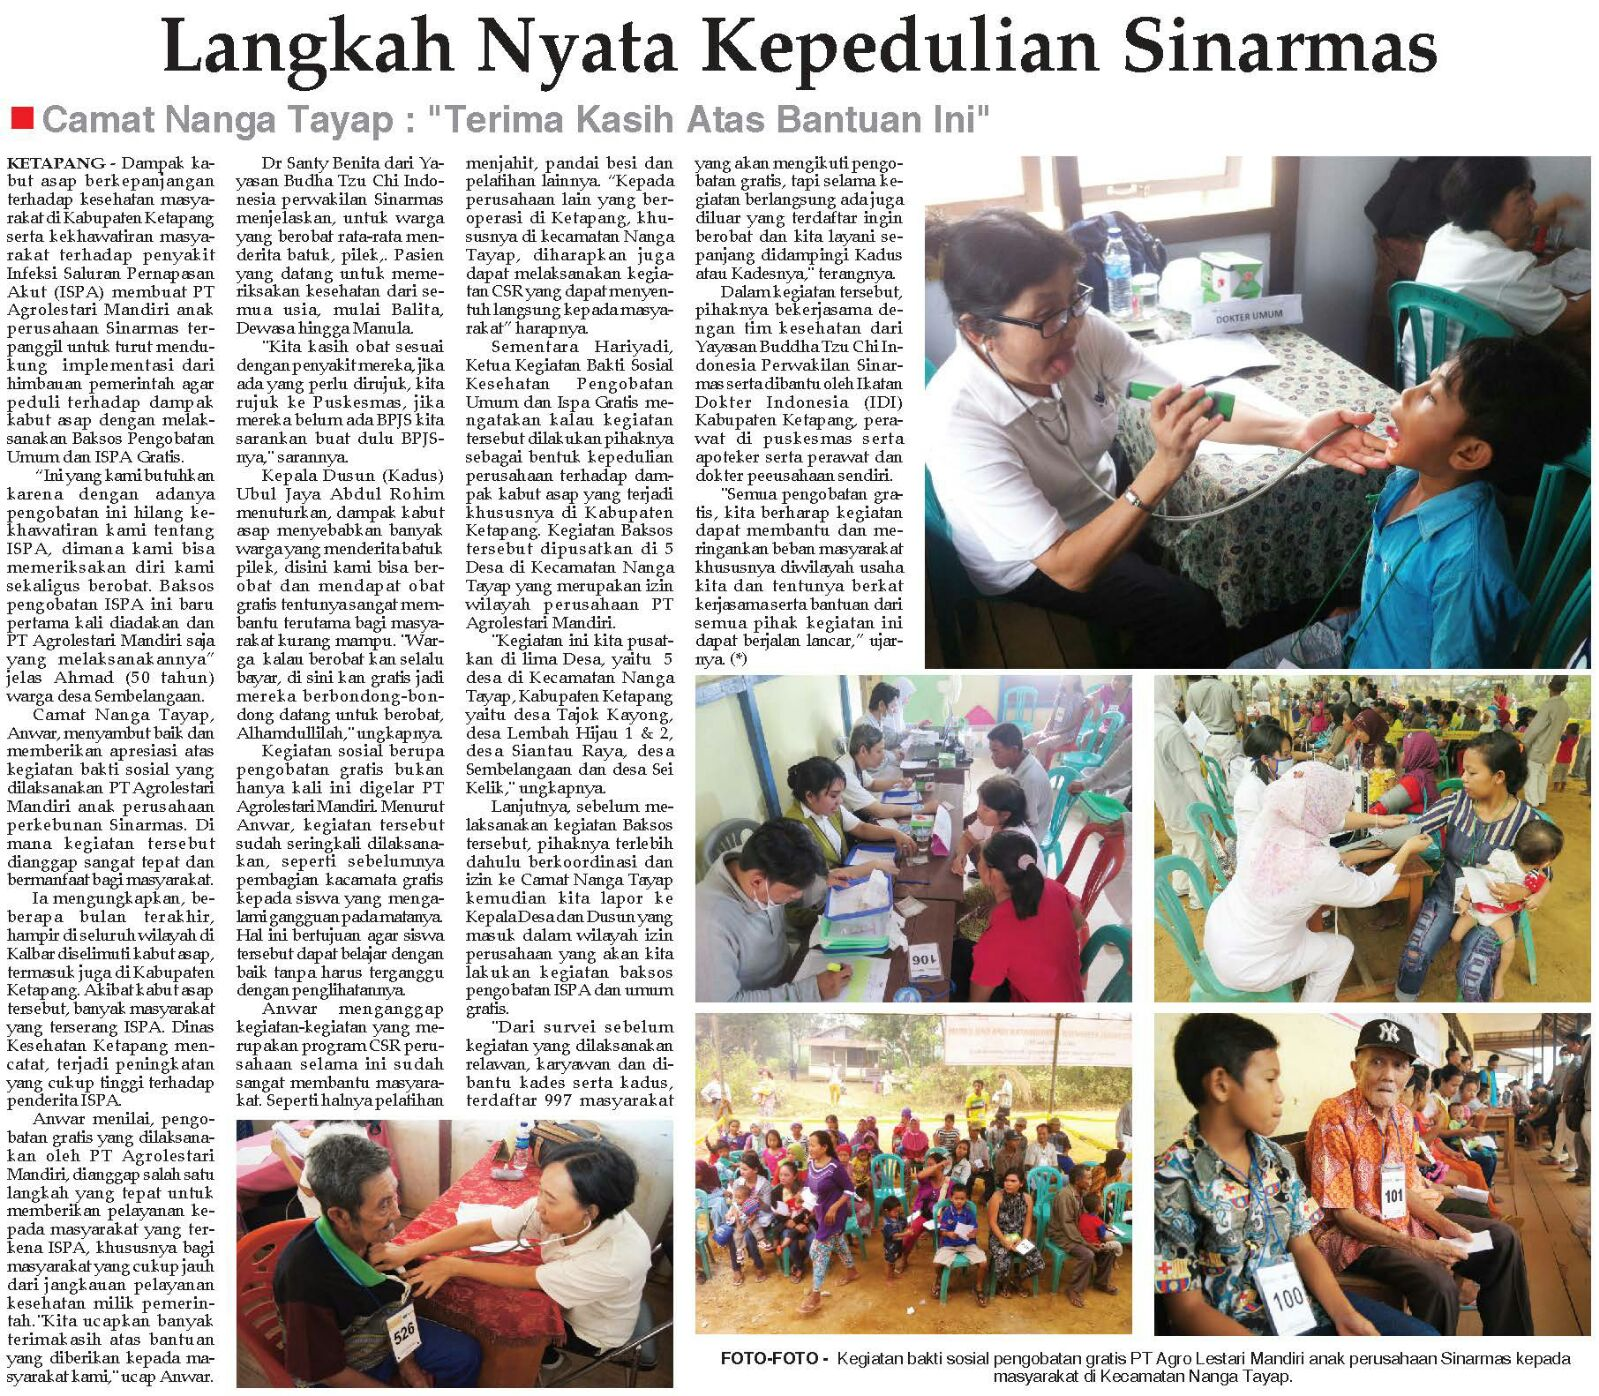 Mobile free clinics at Kecamatan Nanga Tayap and Kabupaten Ketapan